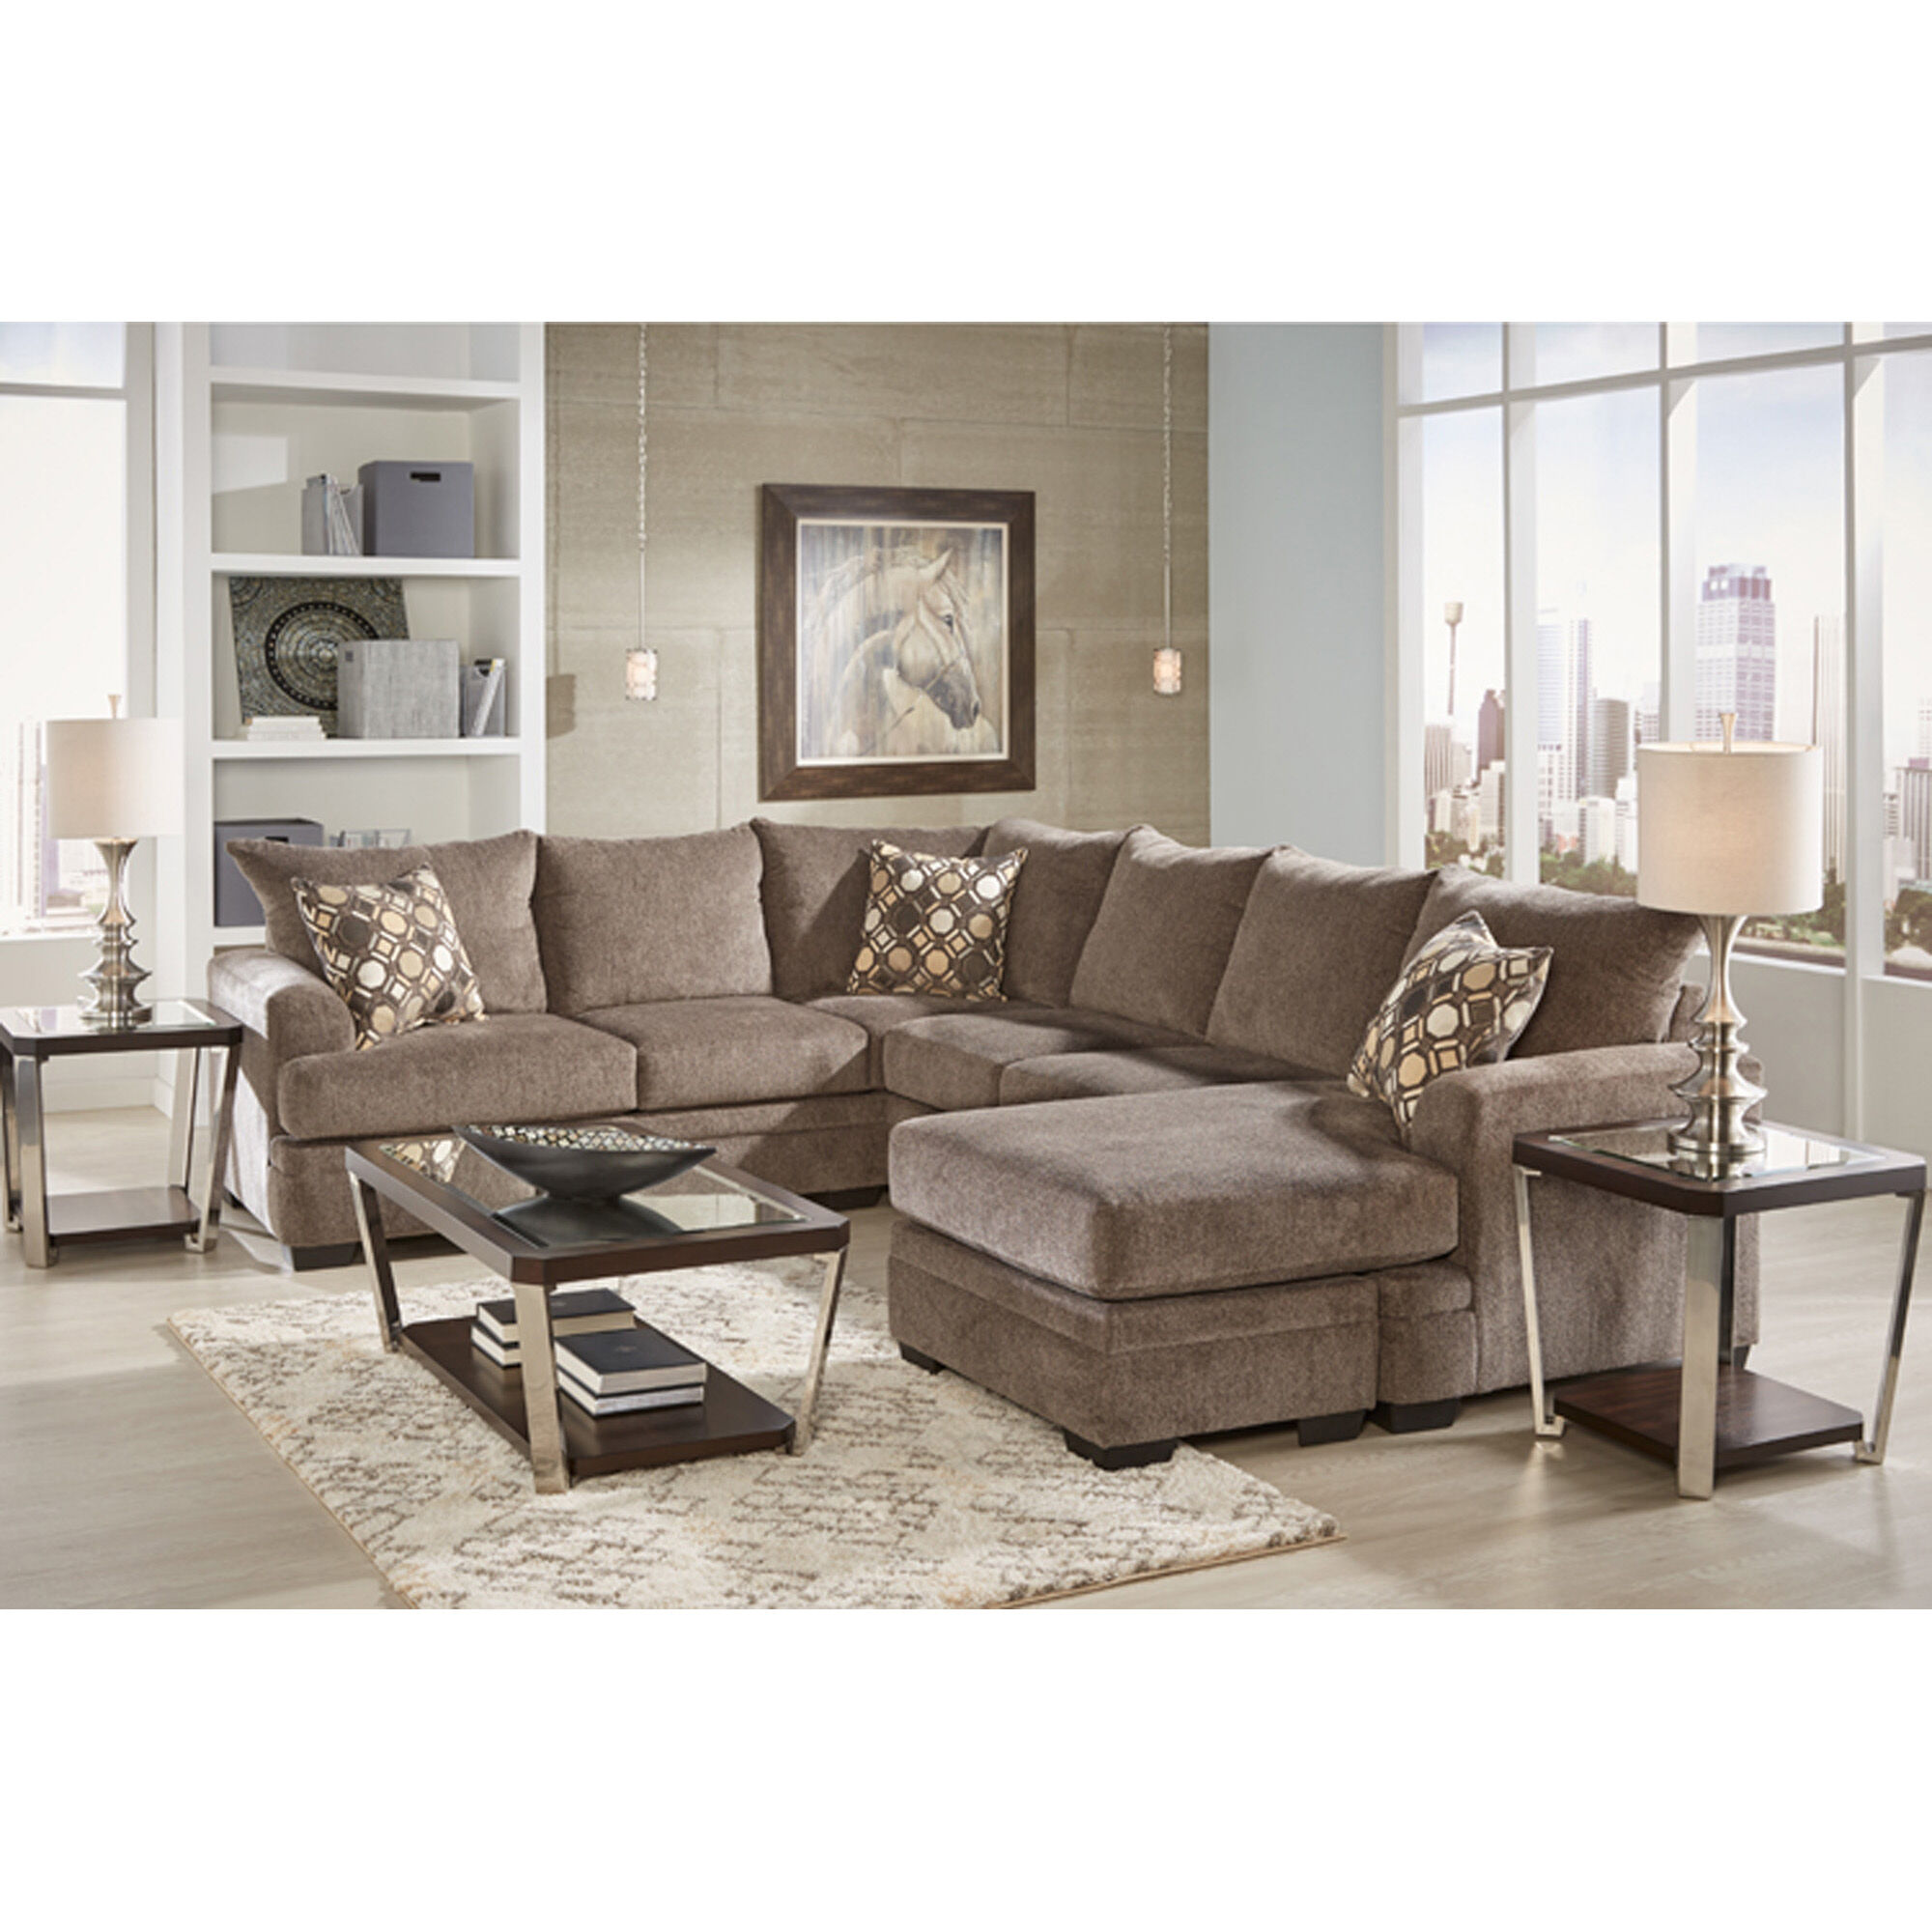 Beau 7 Piece Kimberly Living Room Collection. Woodhaven